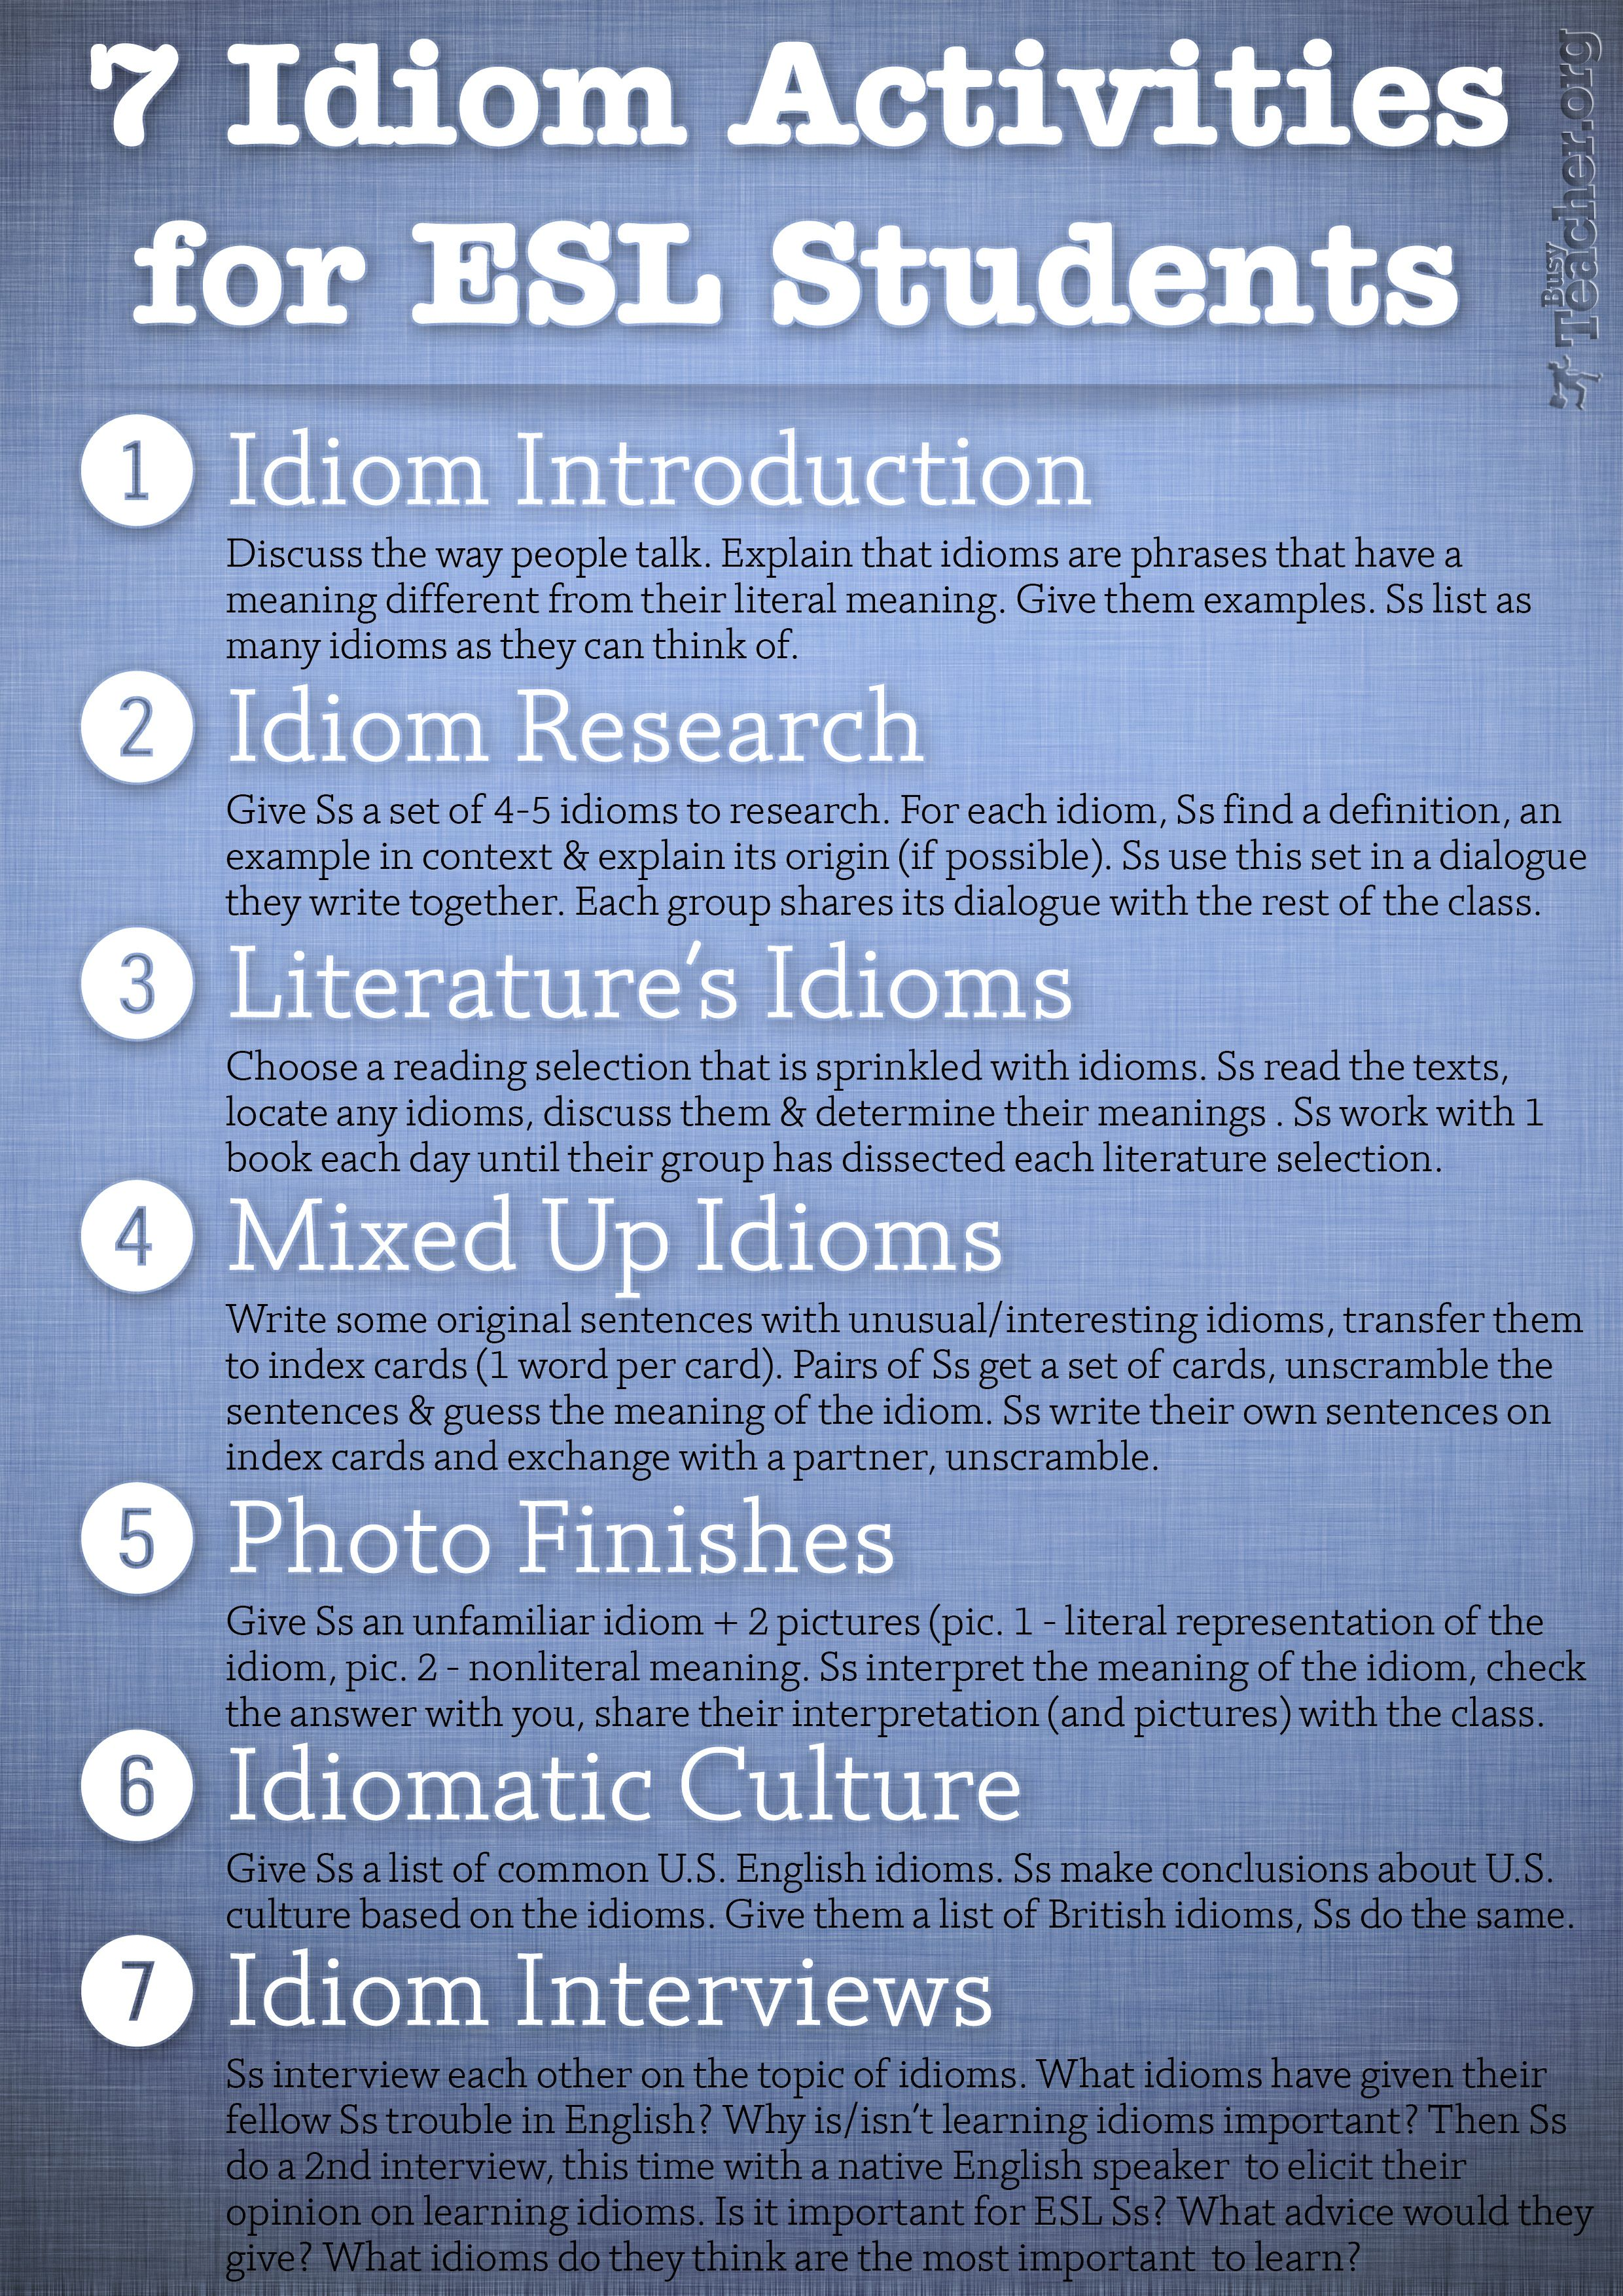 Poster 7 Idiom Activities For Esl Students